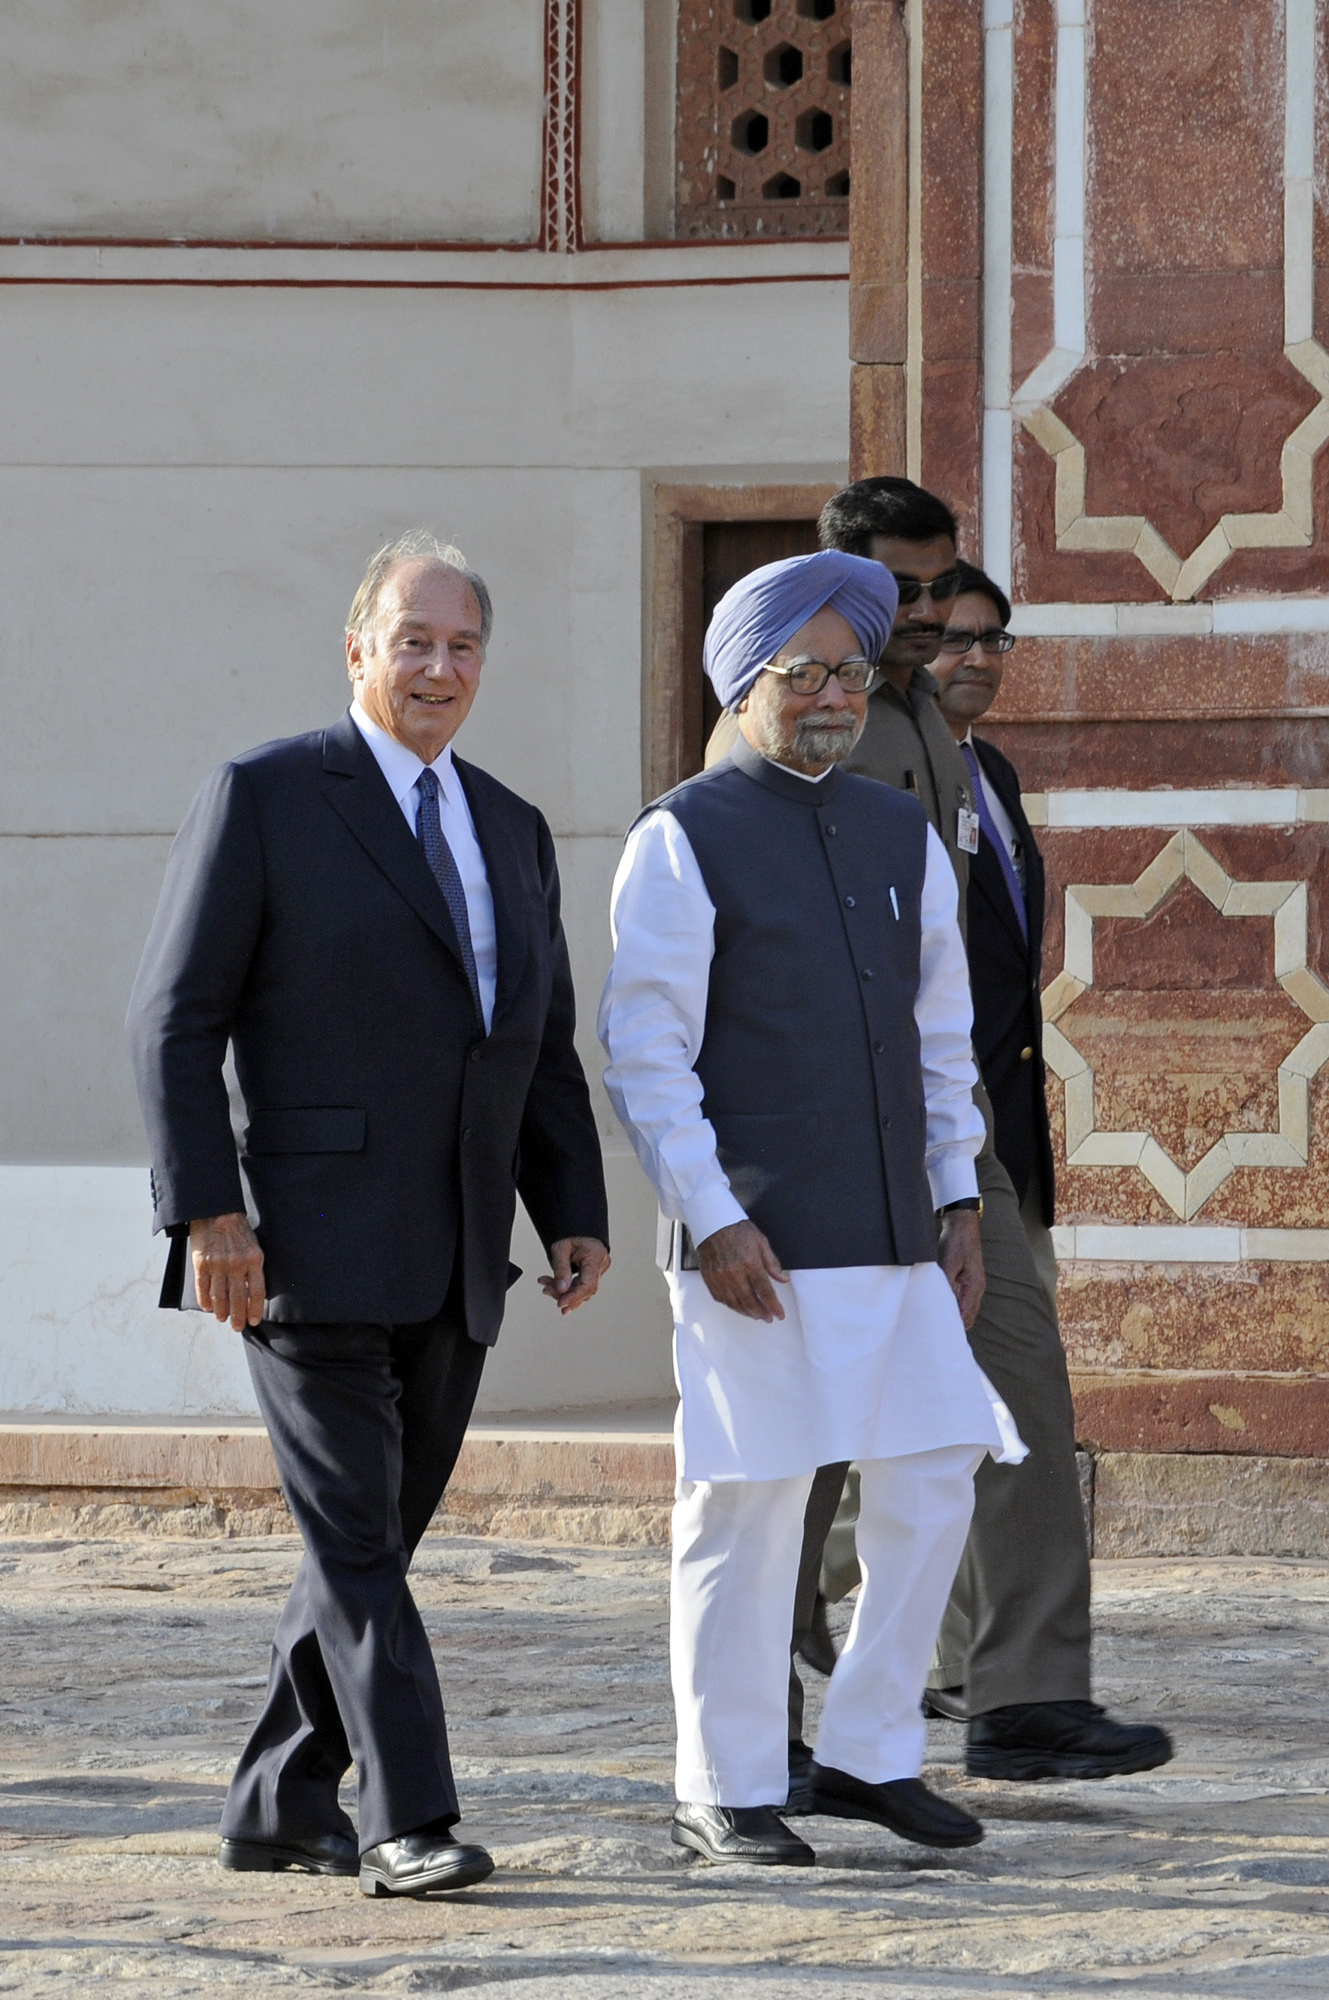 Mawlana Hazar Imam with Indian Prime Minister Manmohan Singh at the inauguration of the restoration of Humayun's Tomb in Delhi. Photo: AKDN / Gary Otte